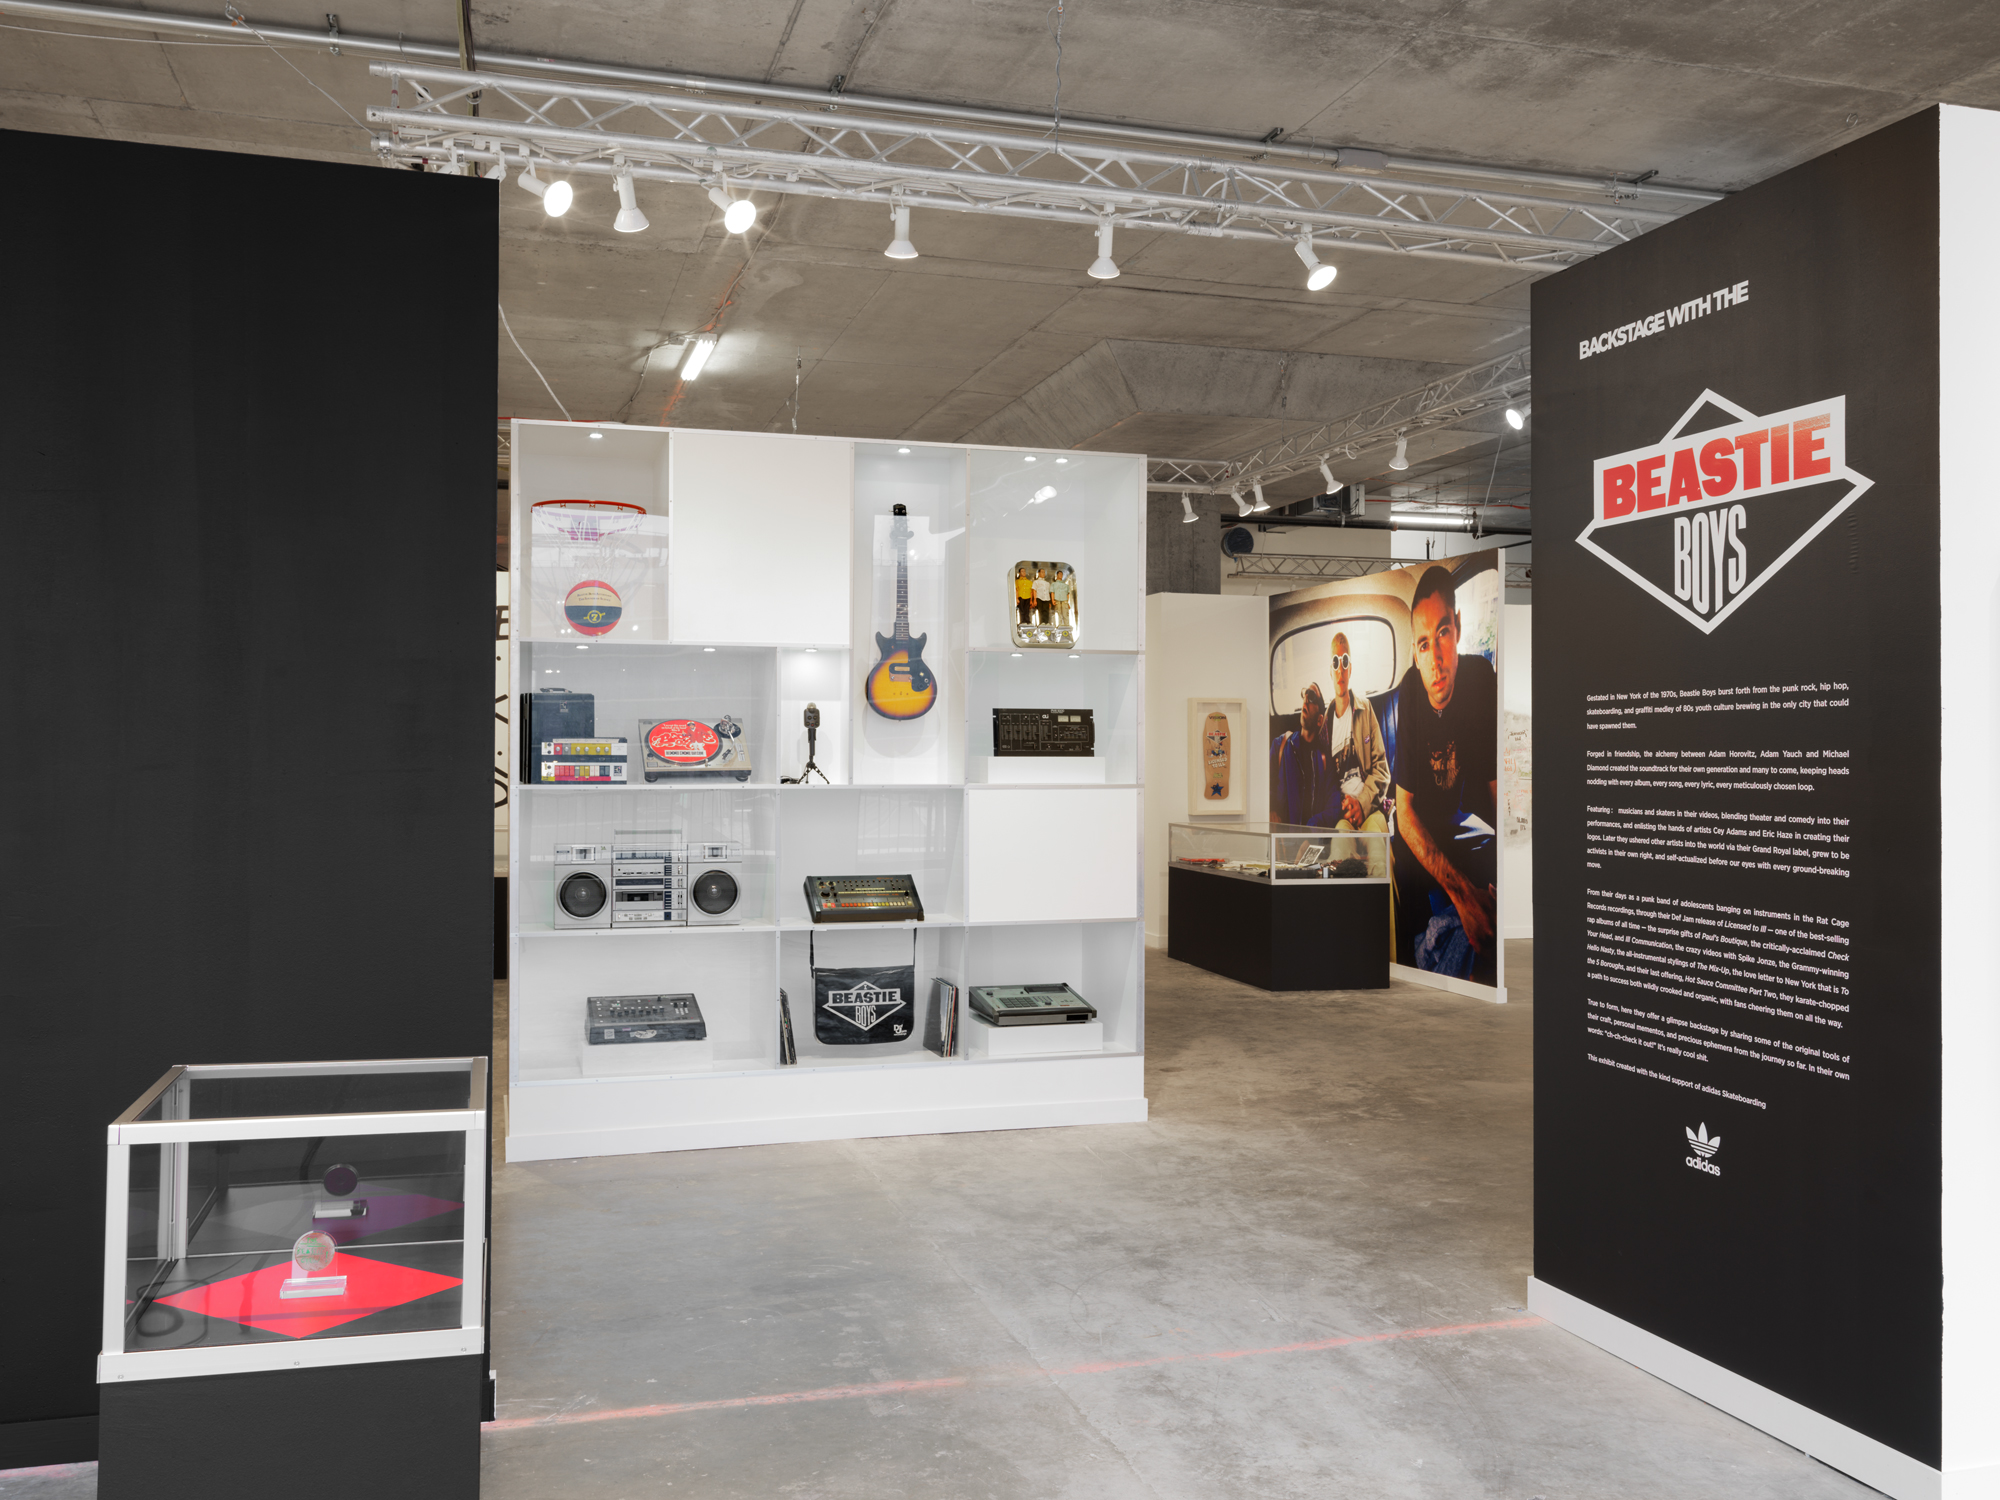 BTS_156 Beastie Boys exhibit.jpg